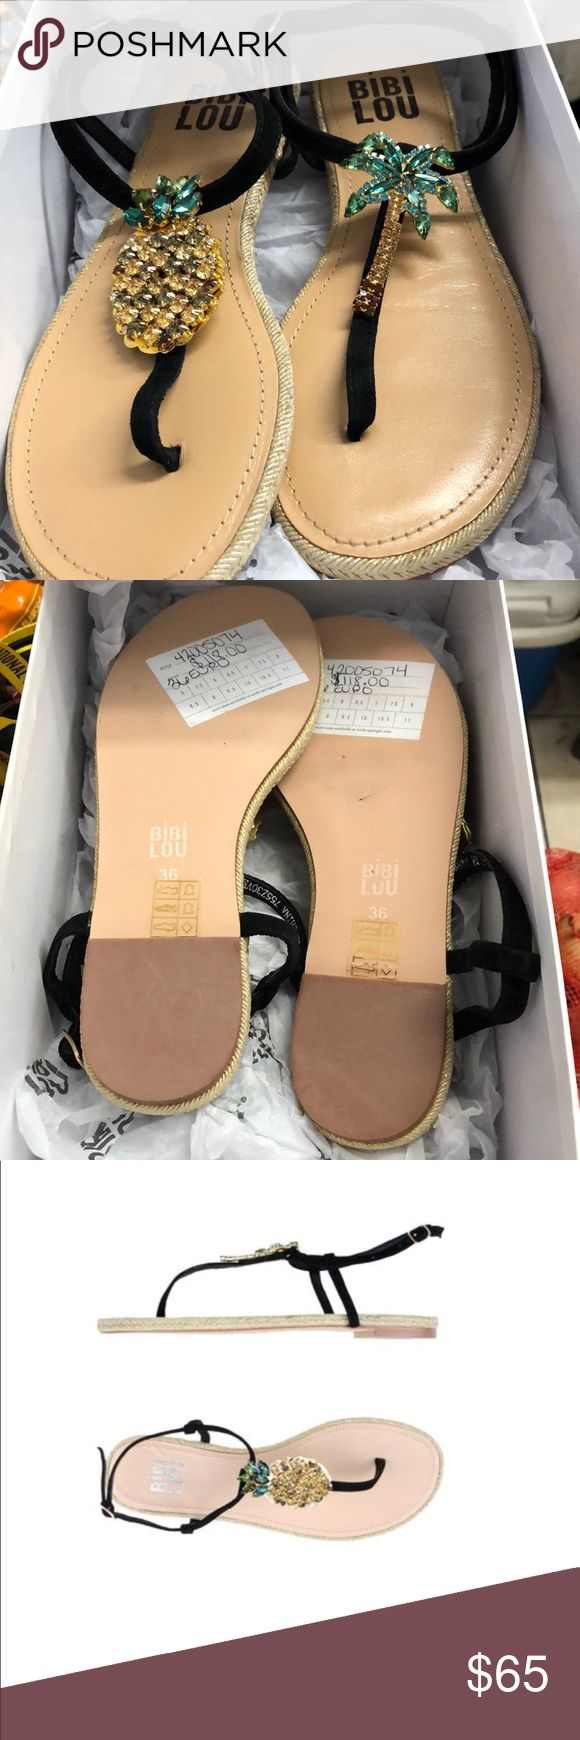 NWT❗️SALE❗️ AND BOX Pineapple 🍍 and palm tree 🌴 Brand new. Box included would be great for a holiday gift. Anthropologie Shoes Sandals